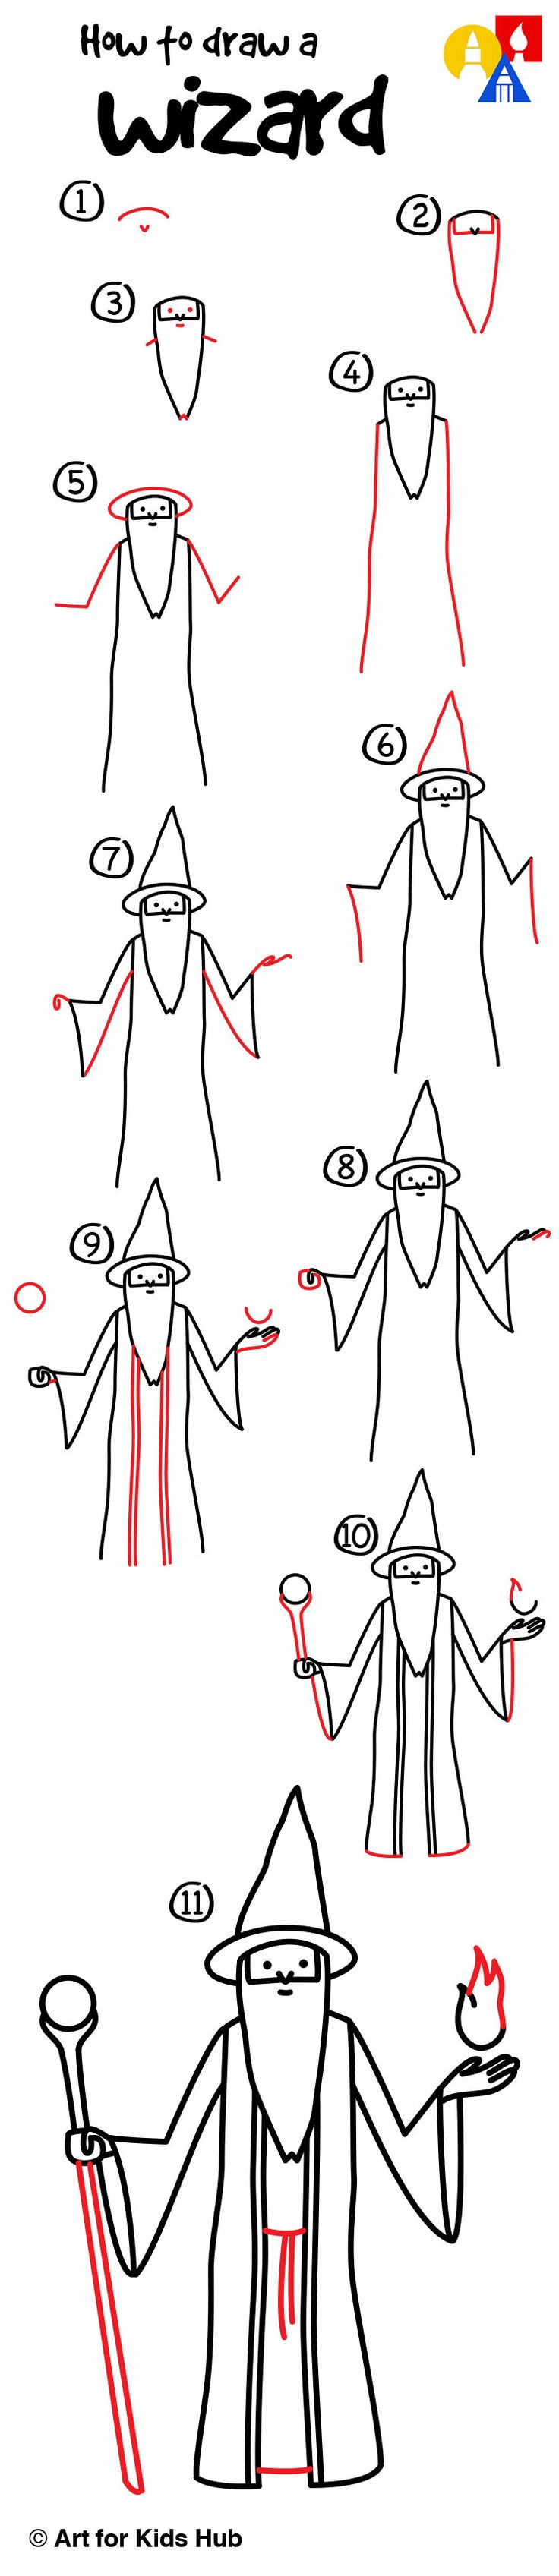 how to draw wizard art for kis